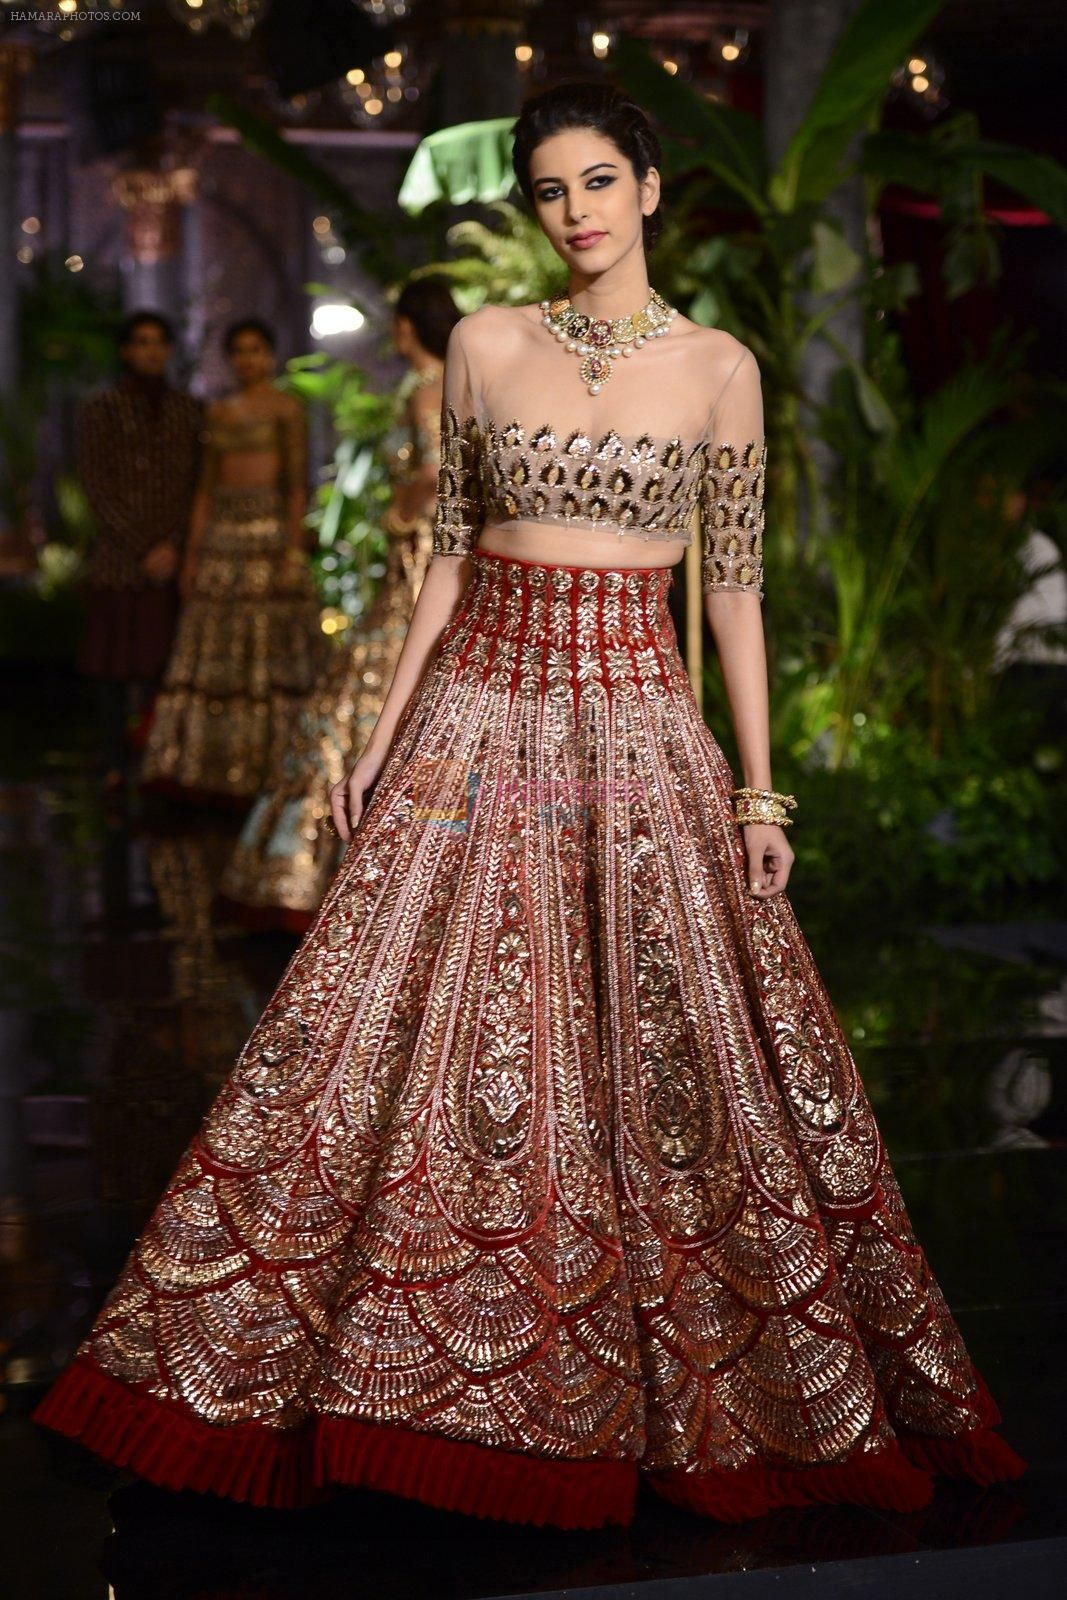 Indian Wedding Dresses Outfits Weddings Desi Bride Venues Ball Gown Ethnic Fashion African